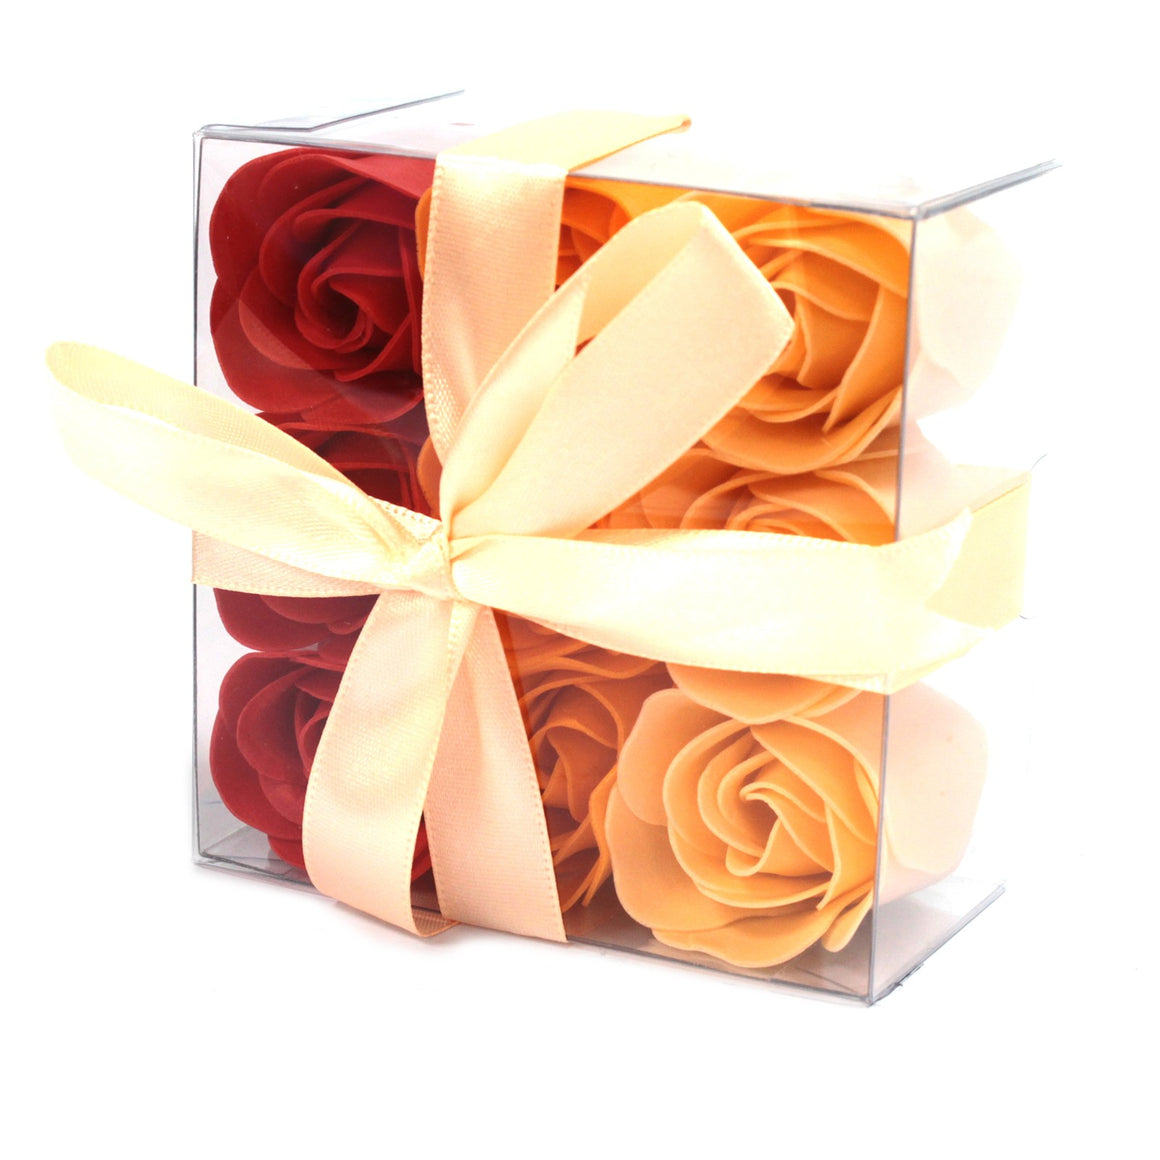 Soap Flower Heart Box Roses (Set of 9)